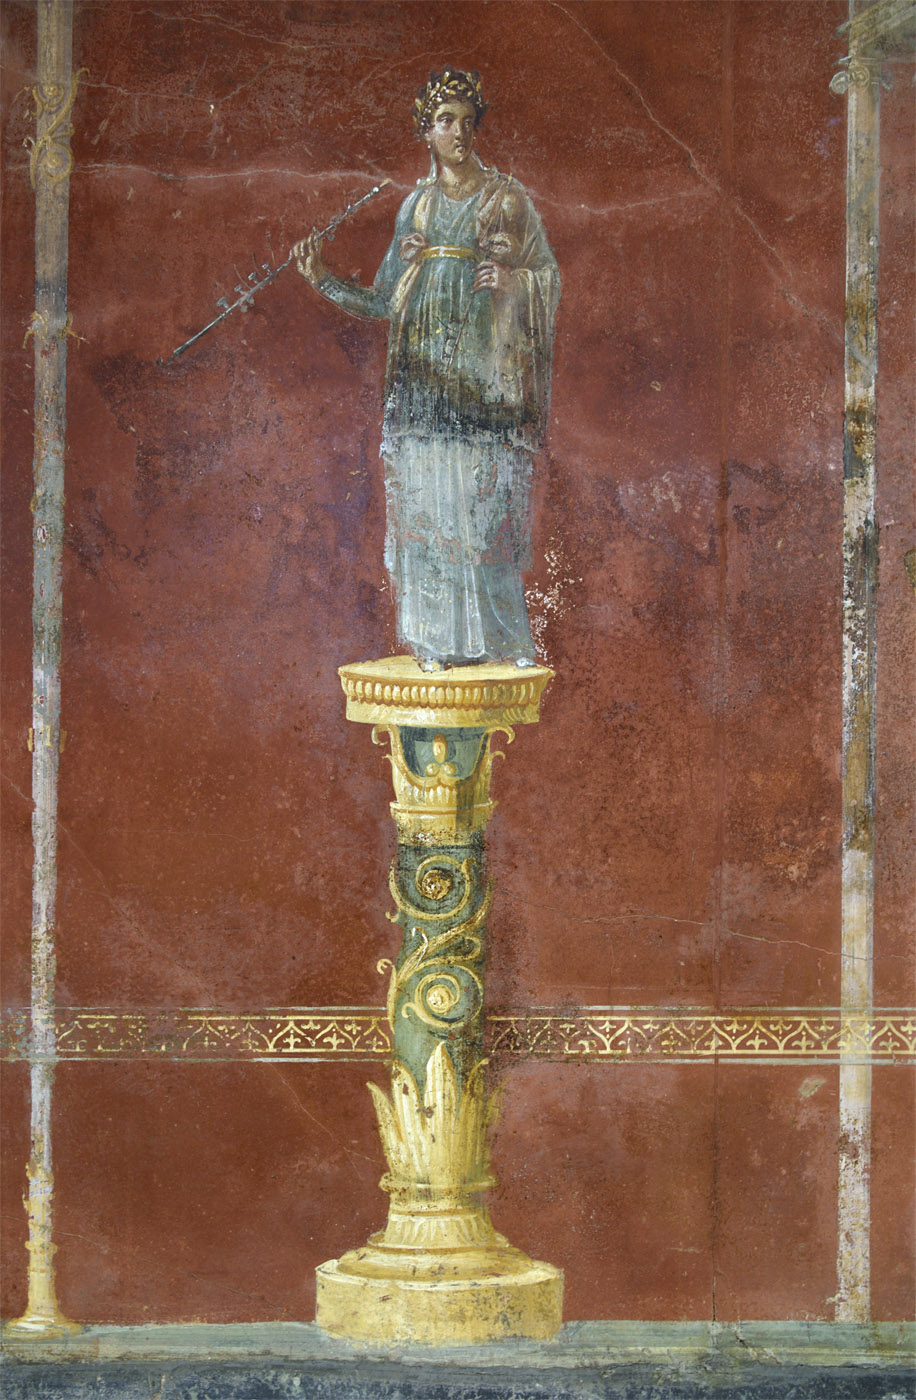 Euterpe. Neronian age. Pompeii, Great Gymnasium